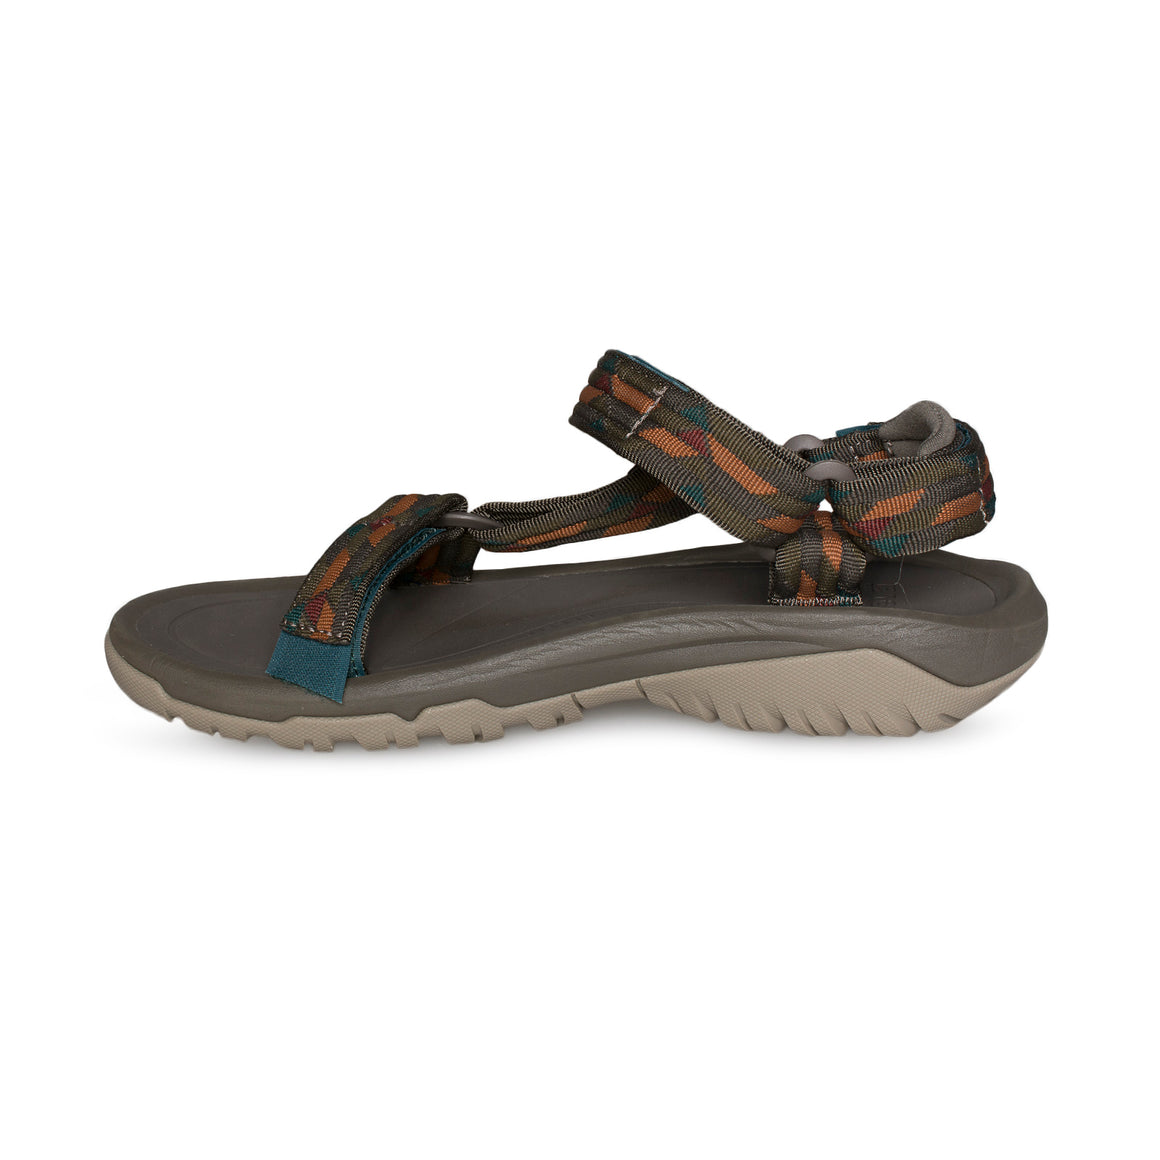 Teva Hurricane XLT 2 Kerne Black Olive Sandals - Women's